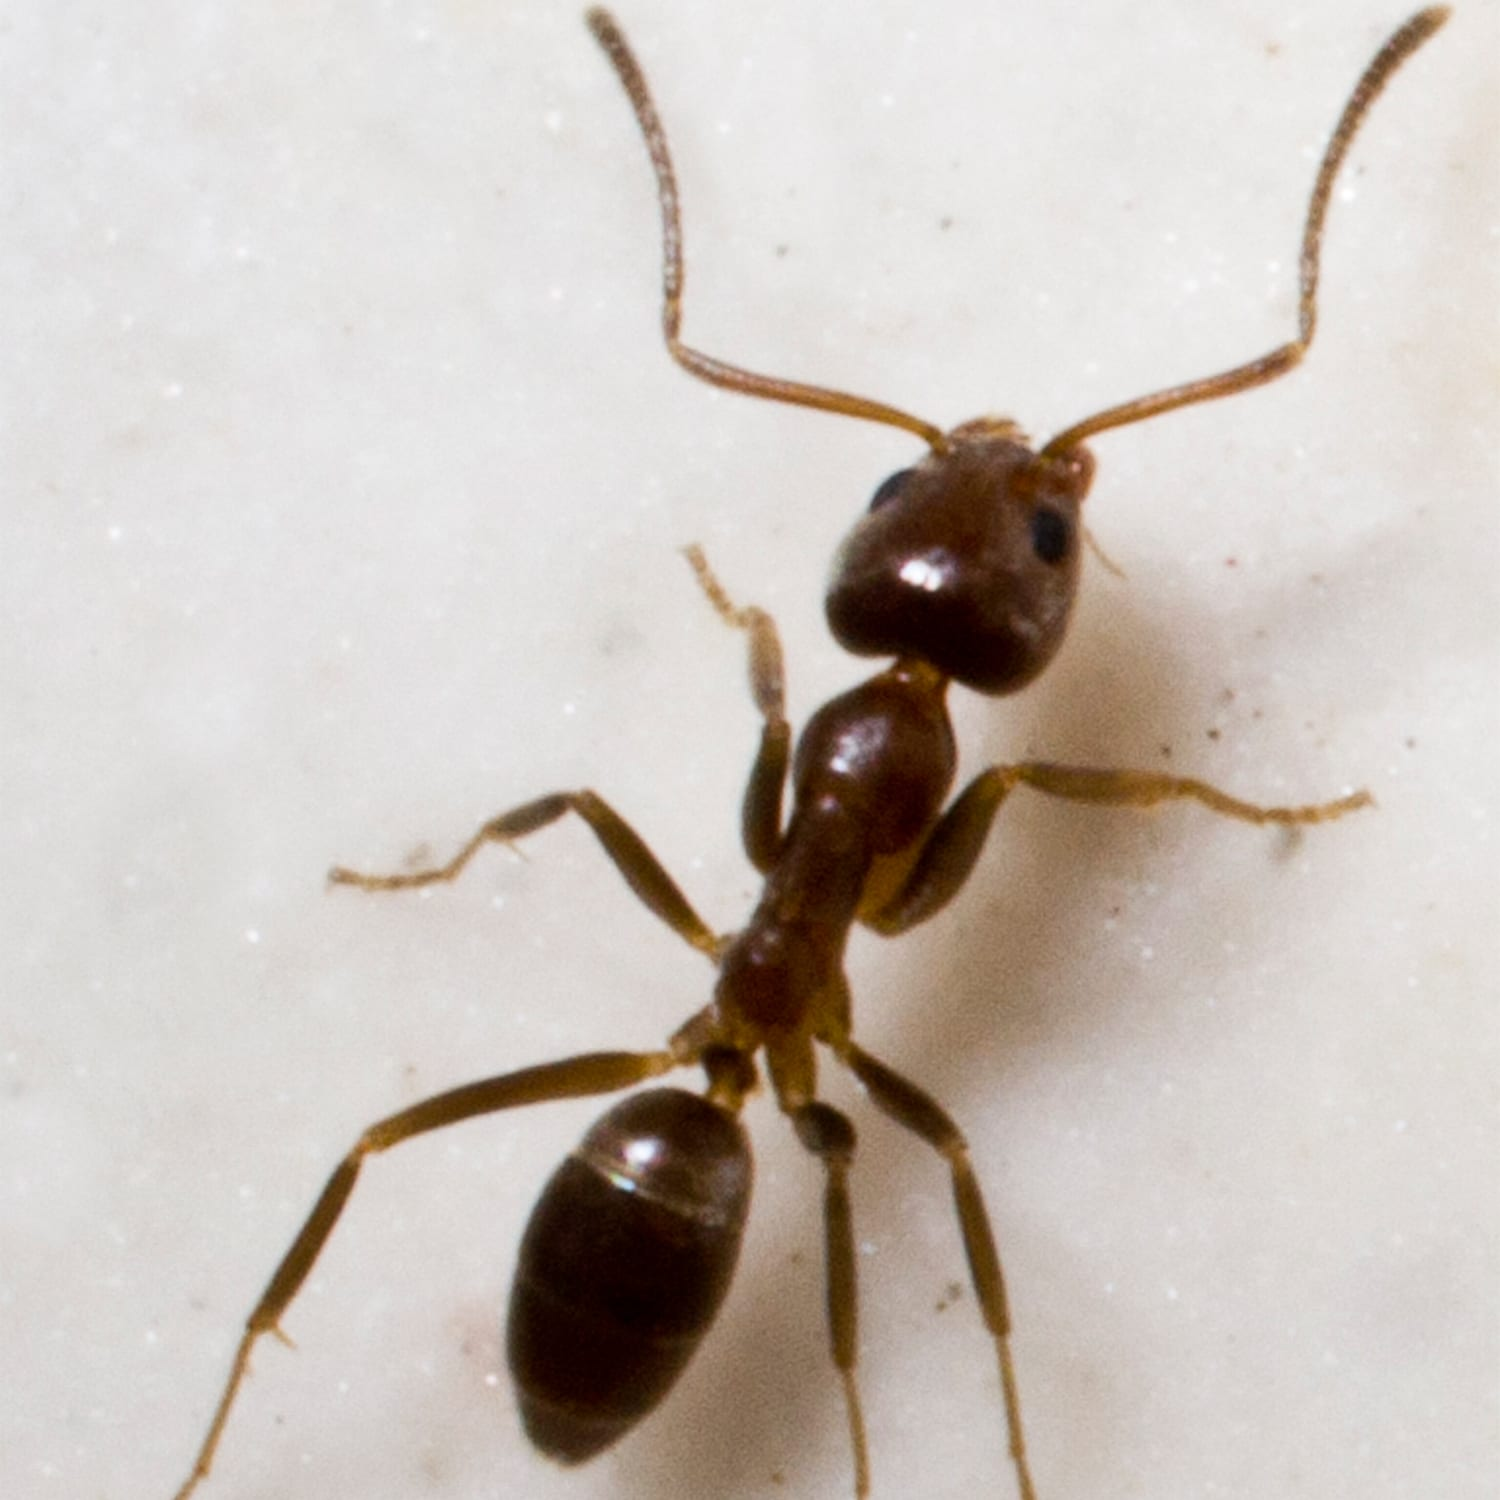 The Argentine Ant